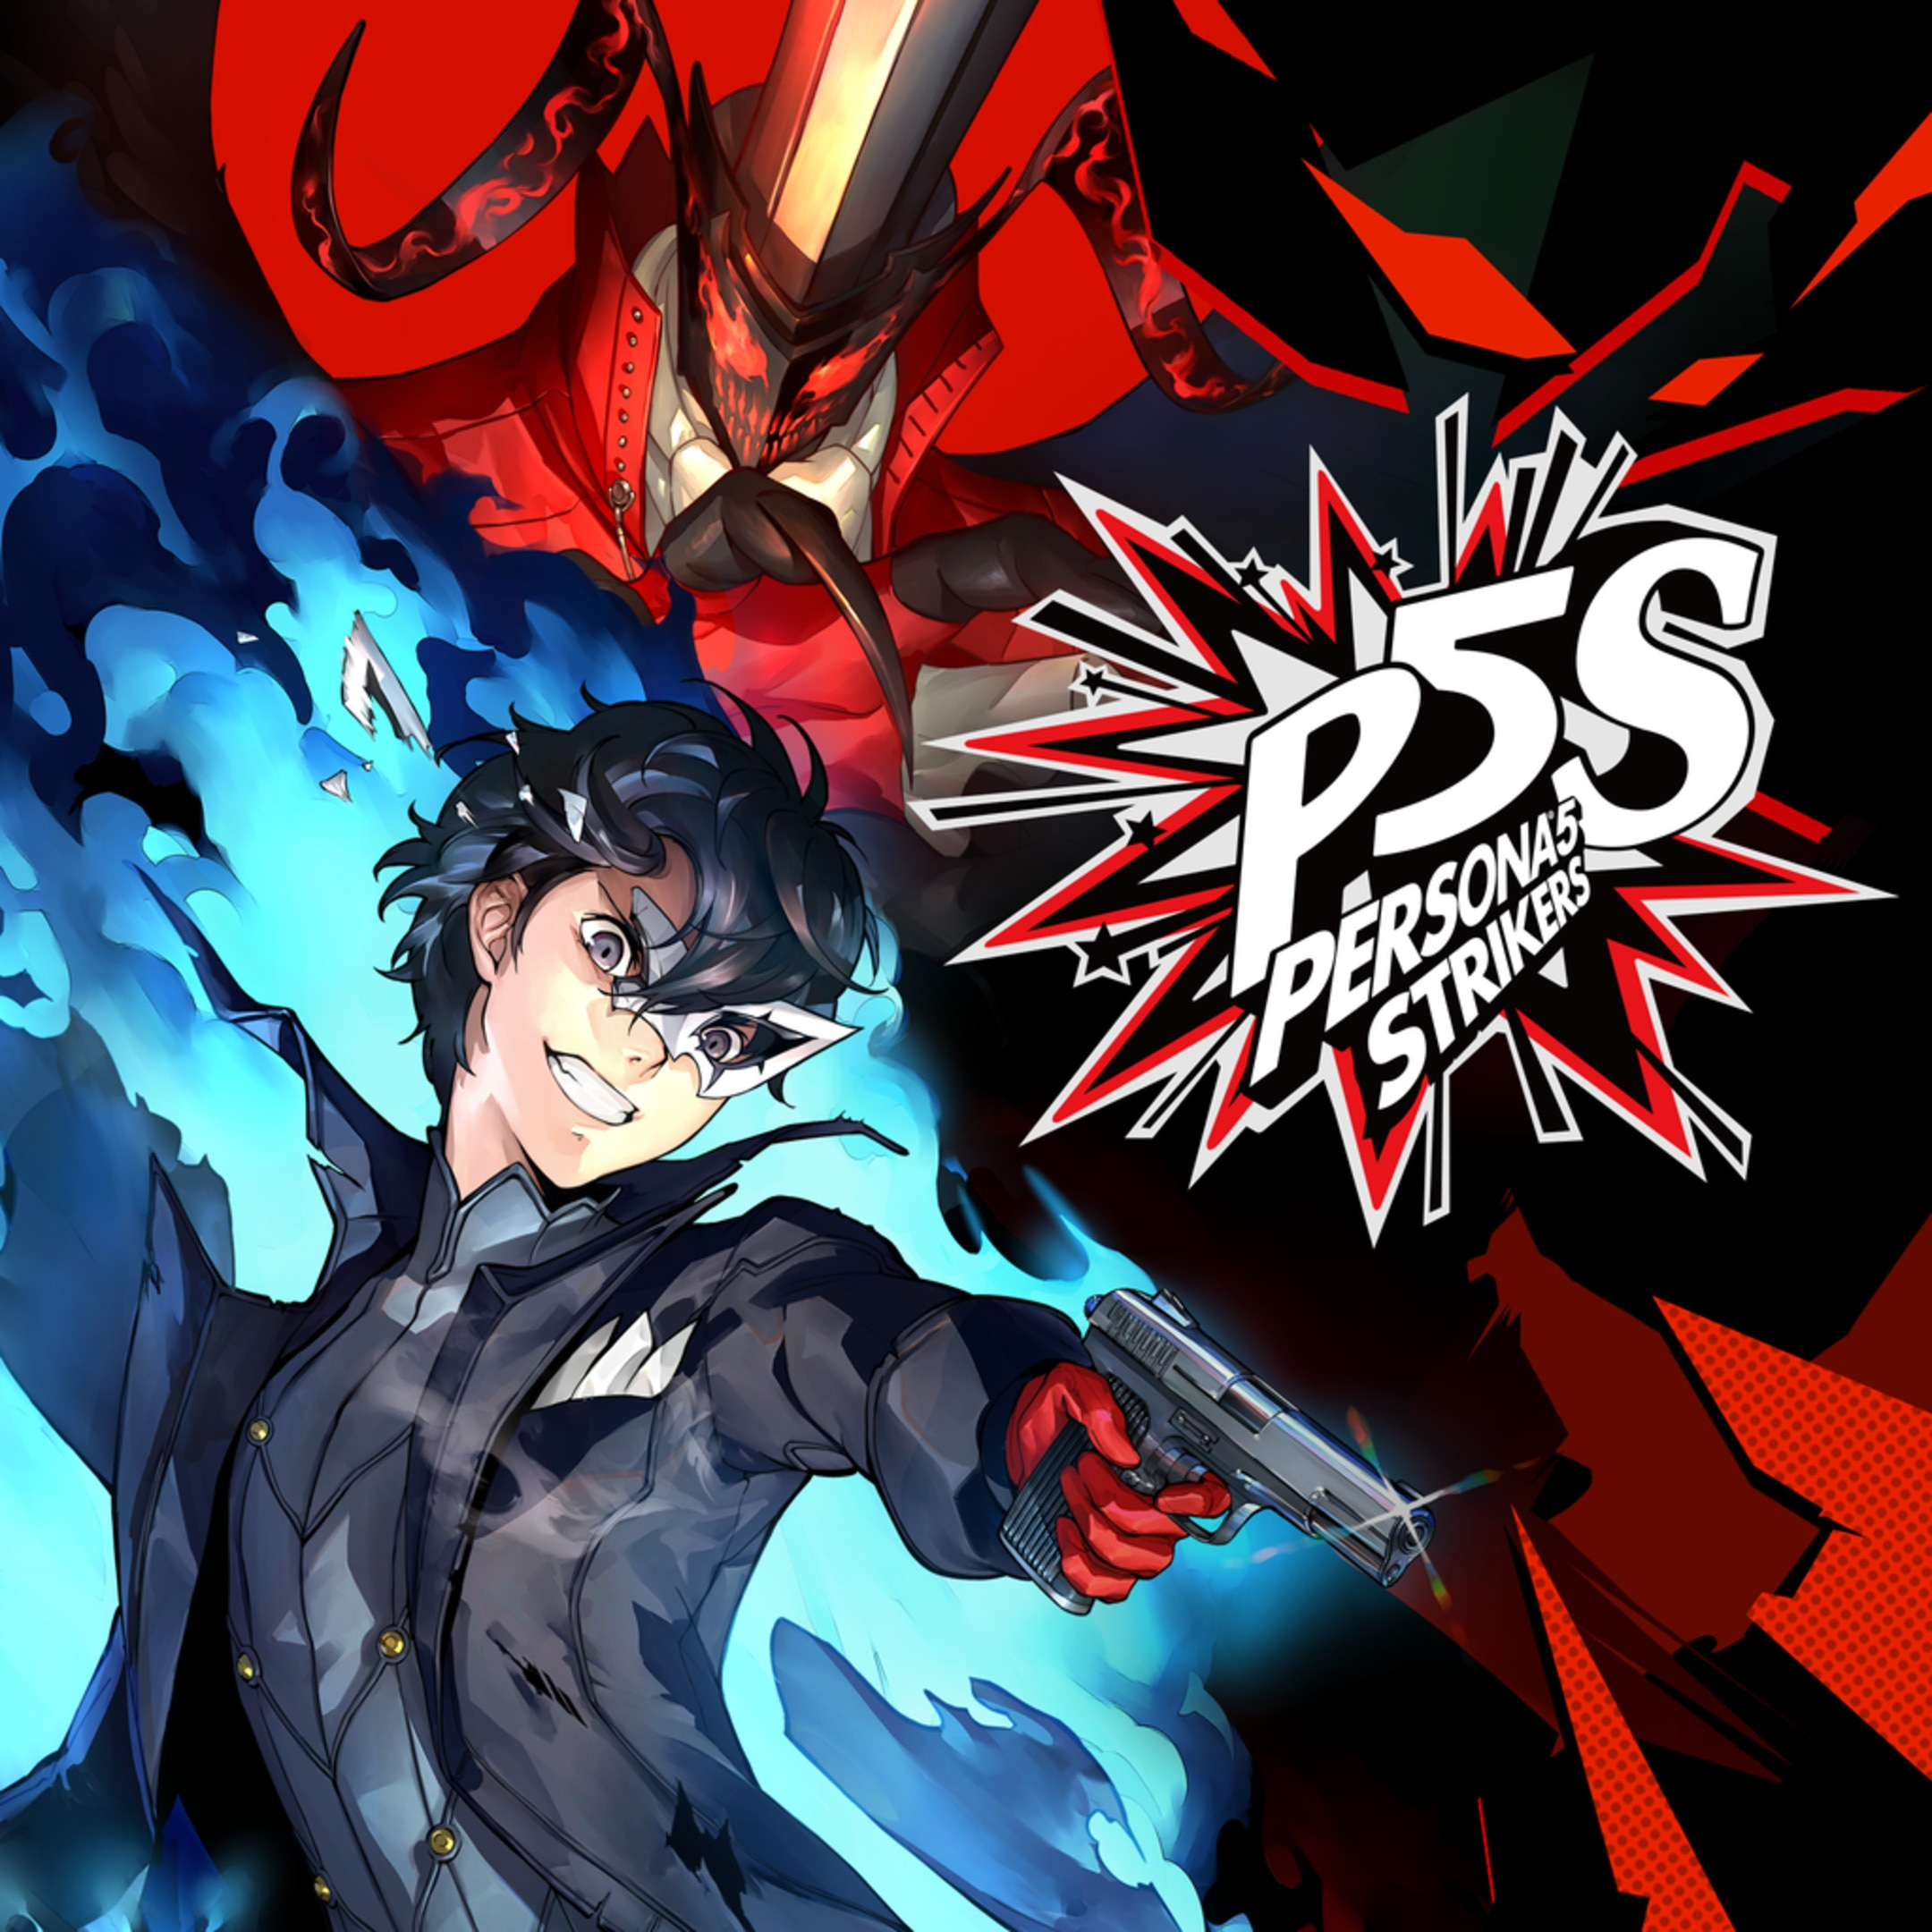 Persona®5 Strikers